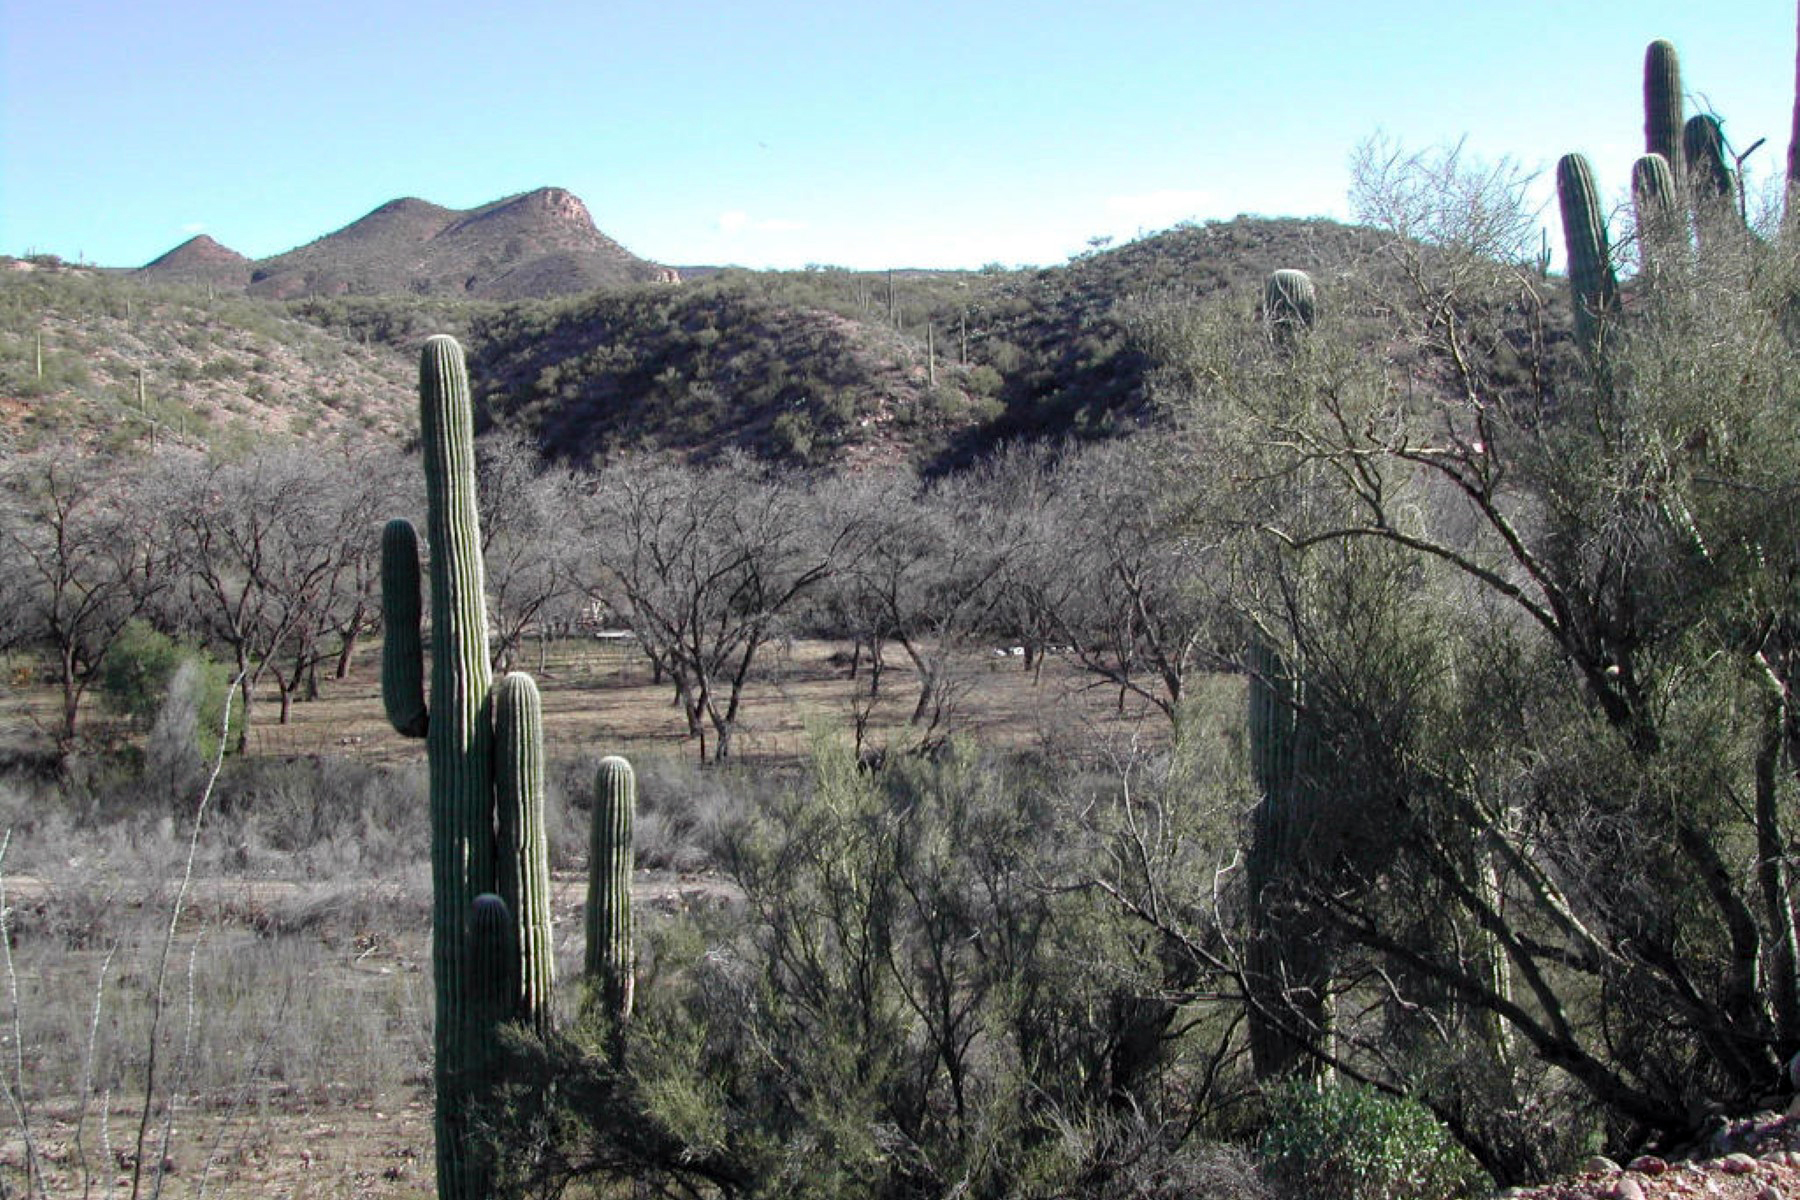 Terreno para Venda às Private 20 Fenced Acres On Aravaipa Creek With Pecan Trees and a Well 88725 E Aravaipa Vistas #2 Winkelman, Arizona 85192 Estados Unidos